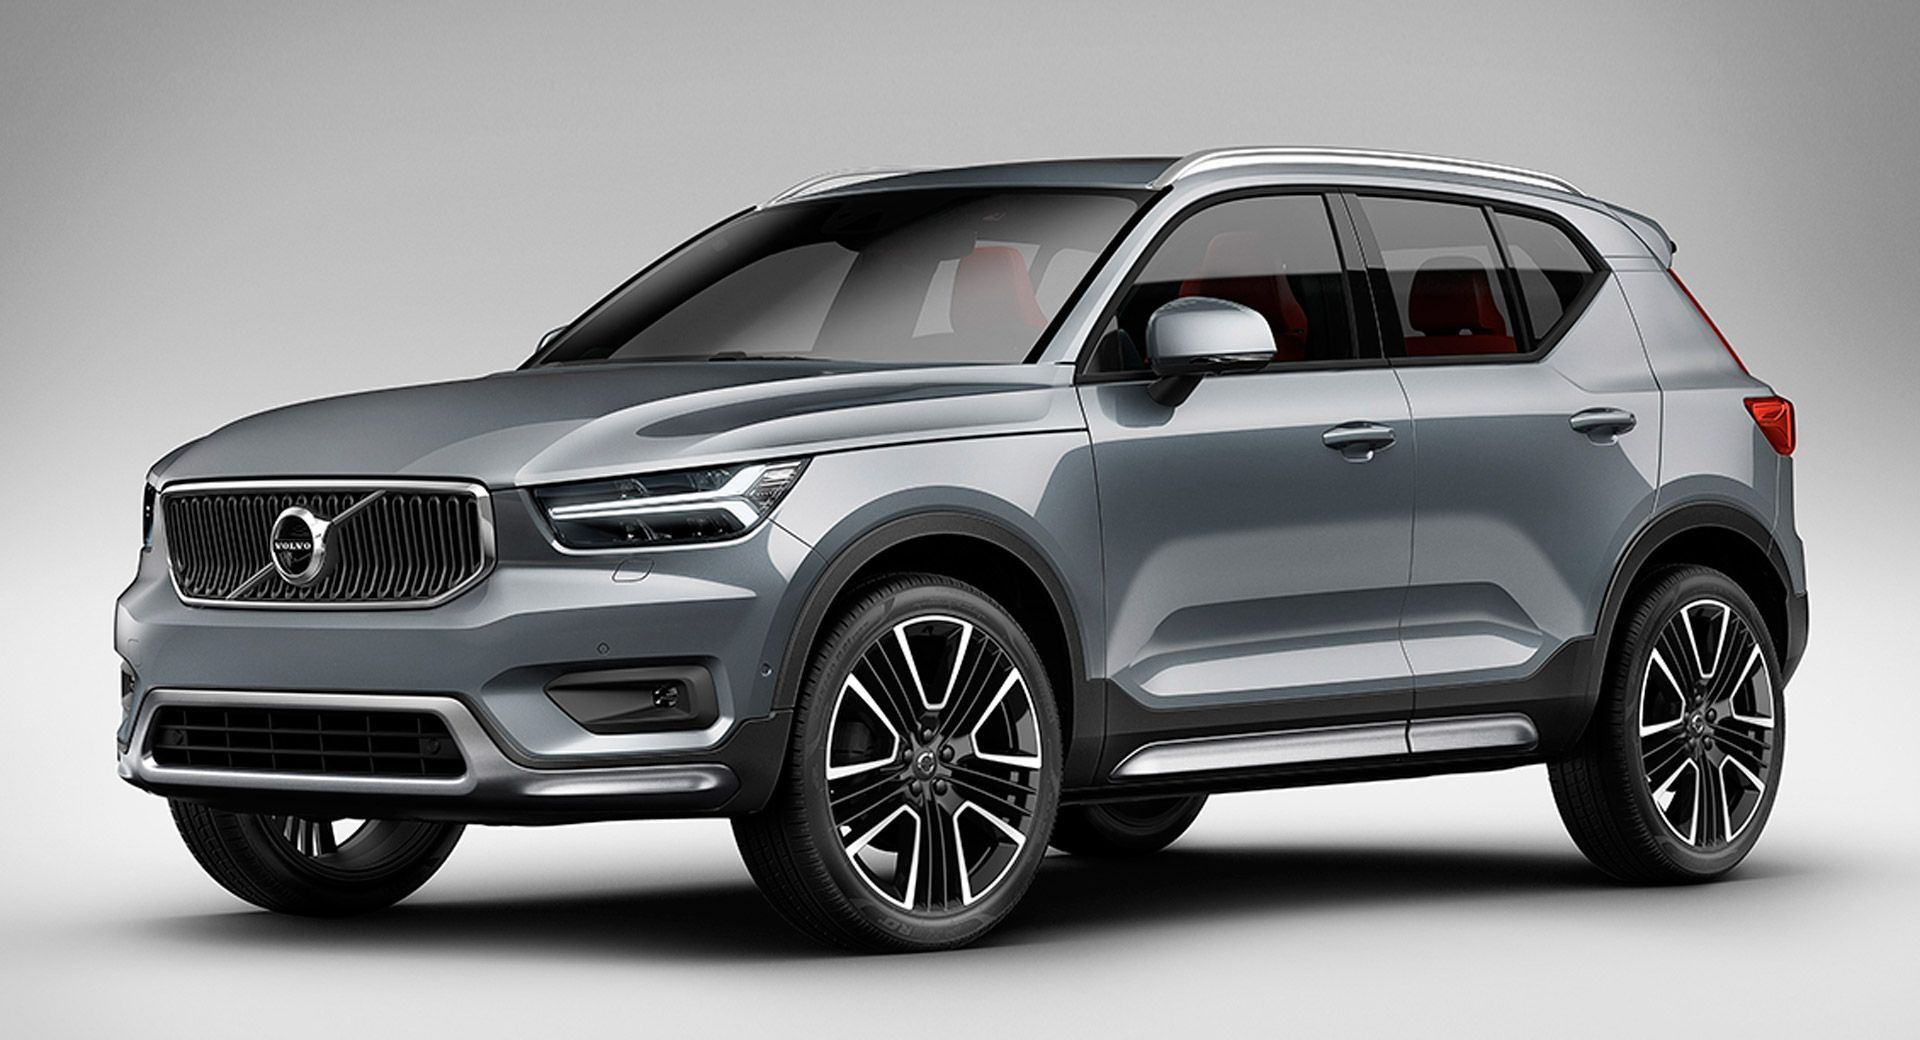 Volvo Xc40 Gets Sportier With New Exterior Styling Kit Carscoops Volvo Suv Volvo Suv